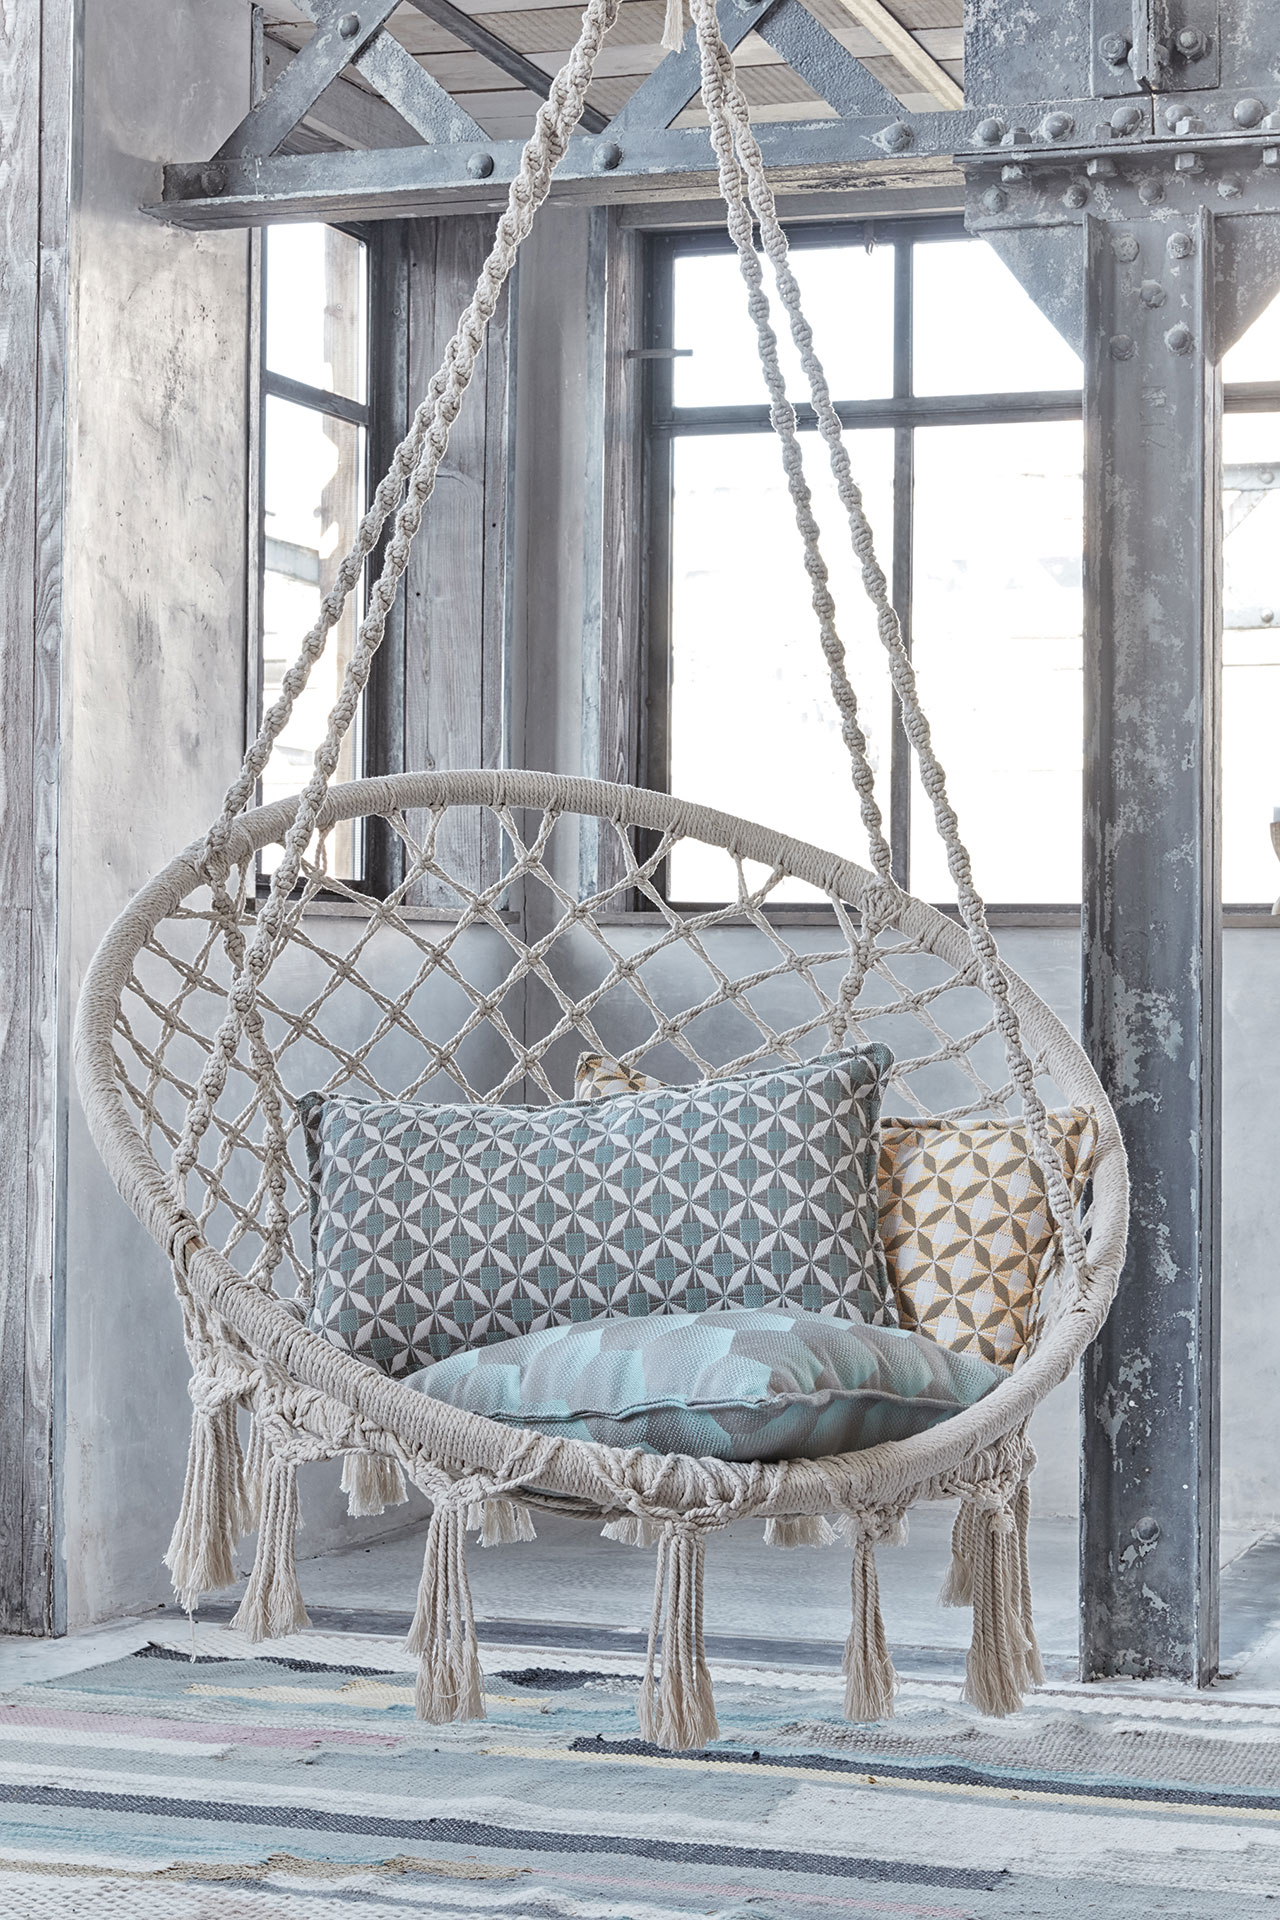 A swing chair with blue pillows.